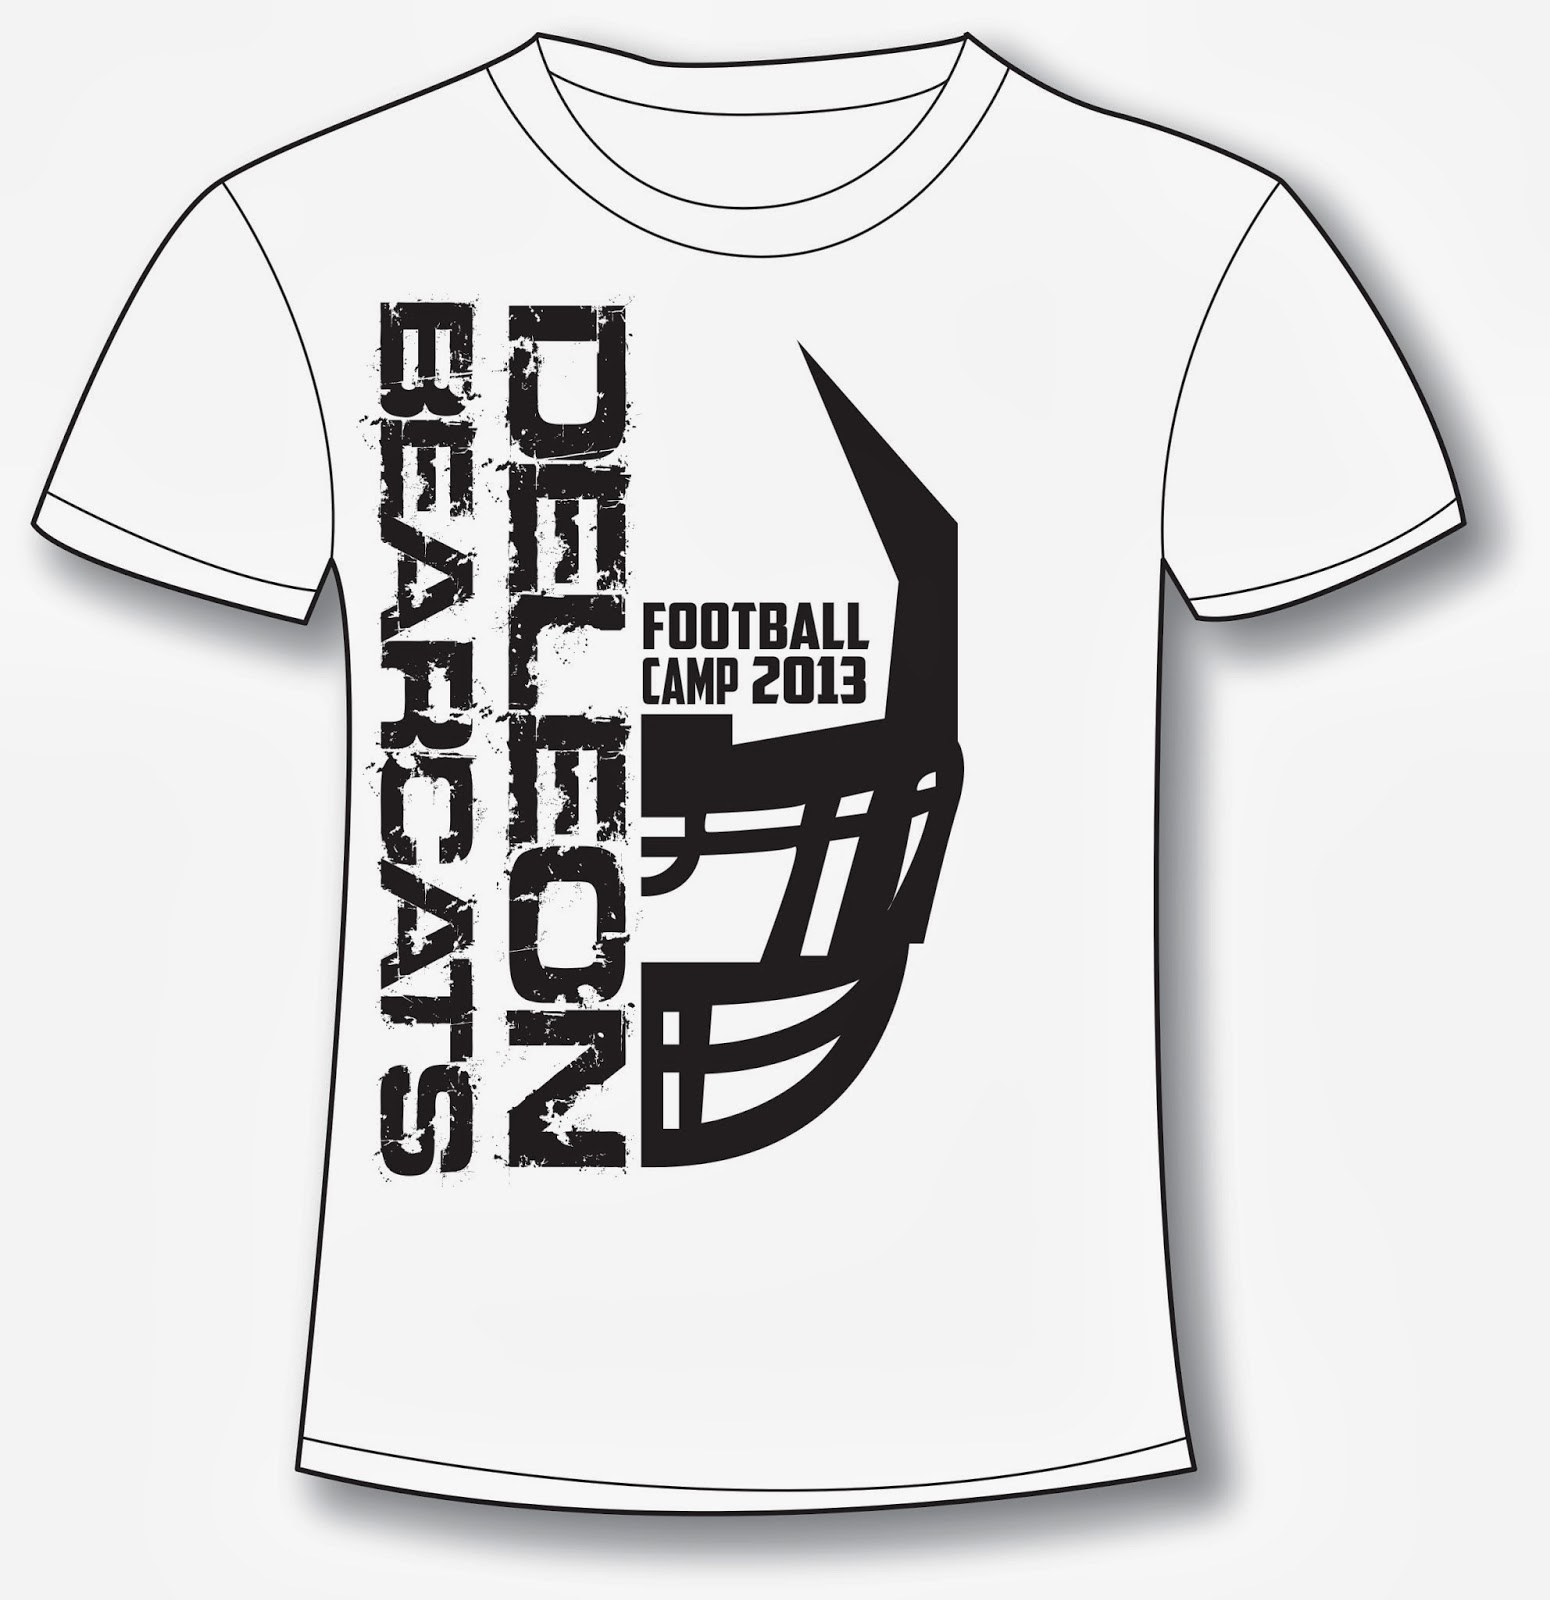 Football T Shirt Design Ideas - Home Design Ideas on